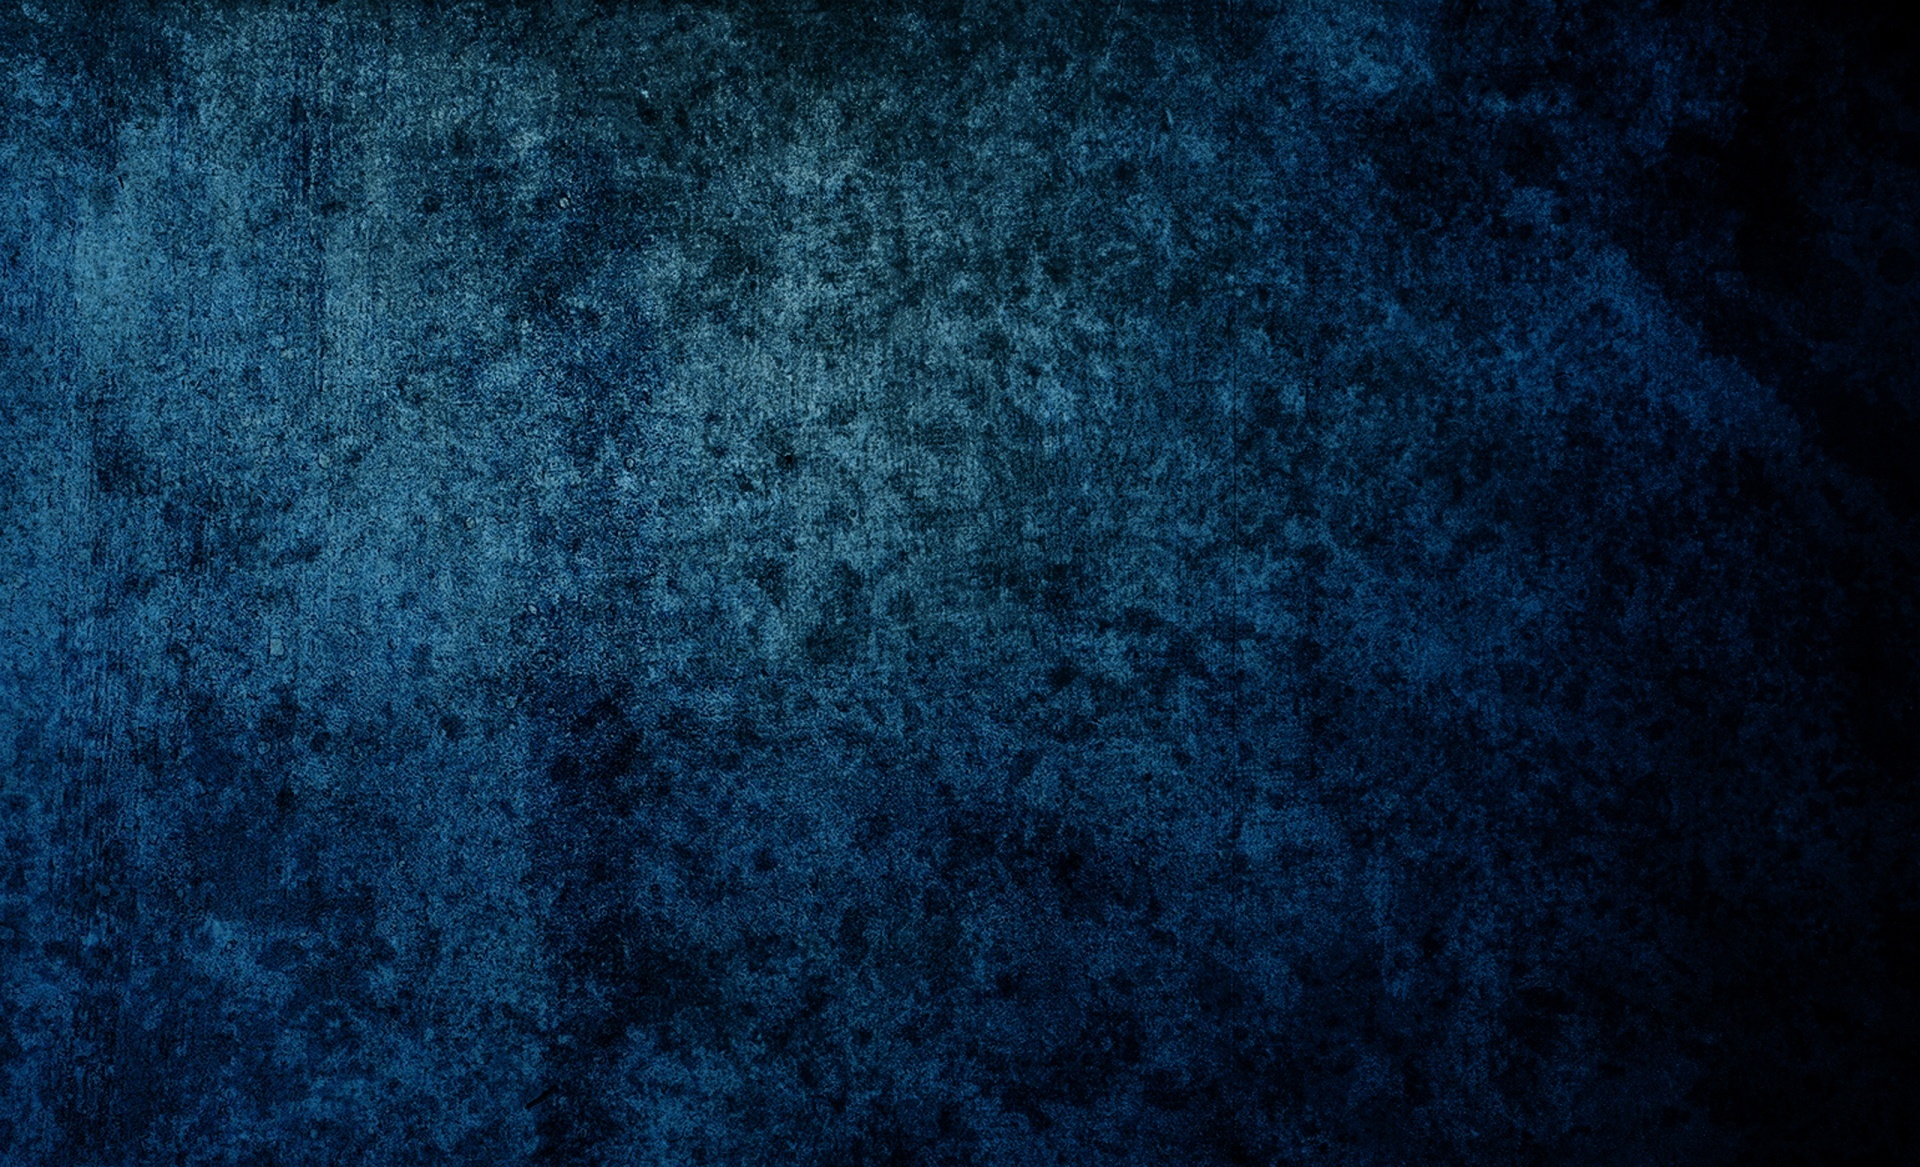 Blue Grunge Wallpaper HD 1920x1167